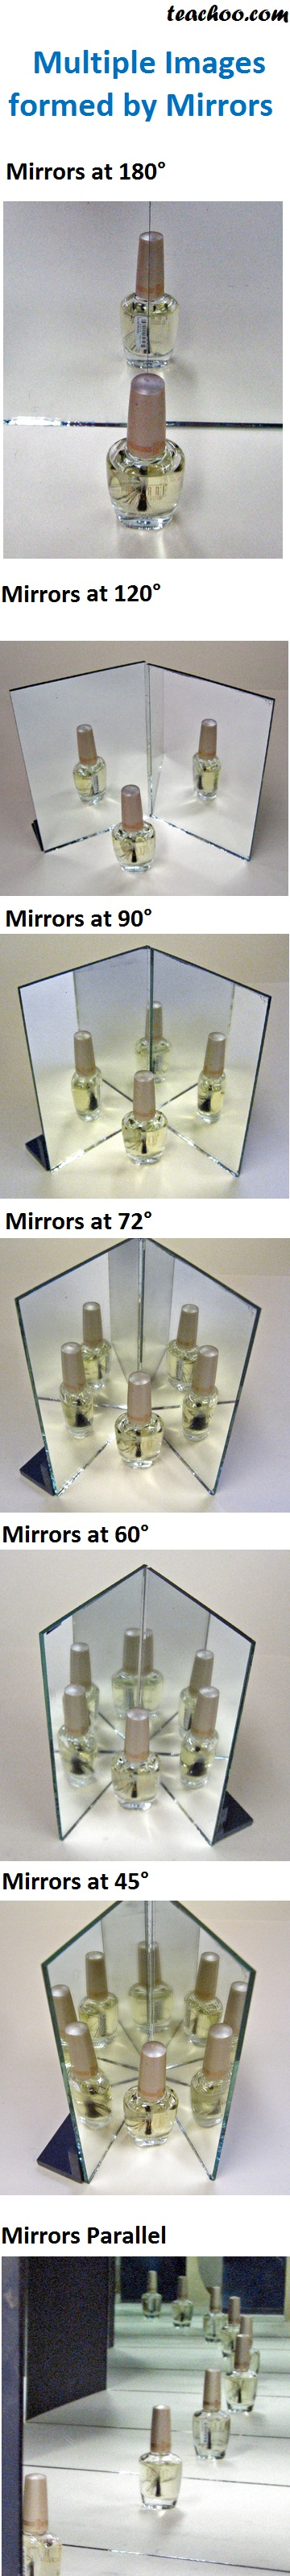 Multiple Images formed by Mirrors - with Examples - Teachoo.jpg